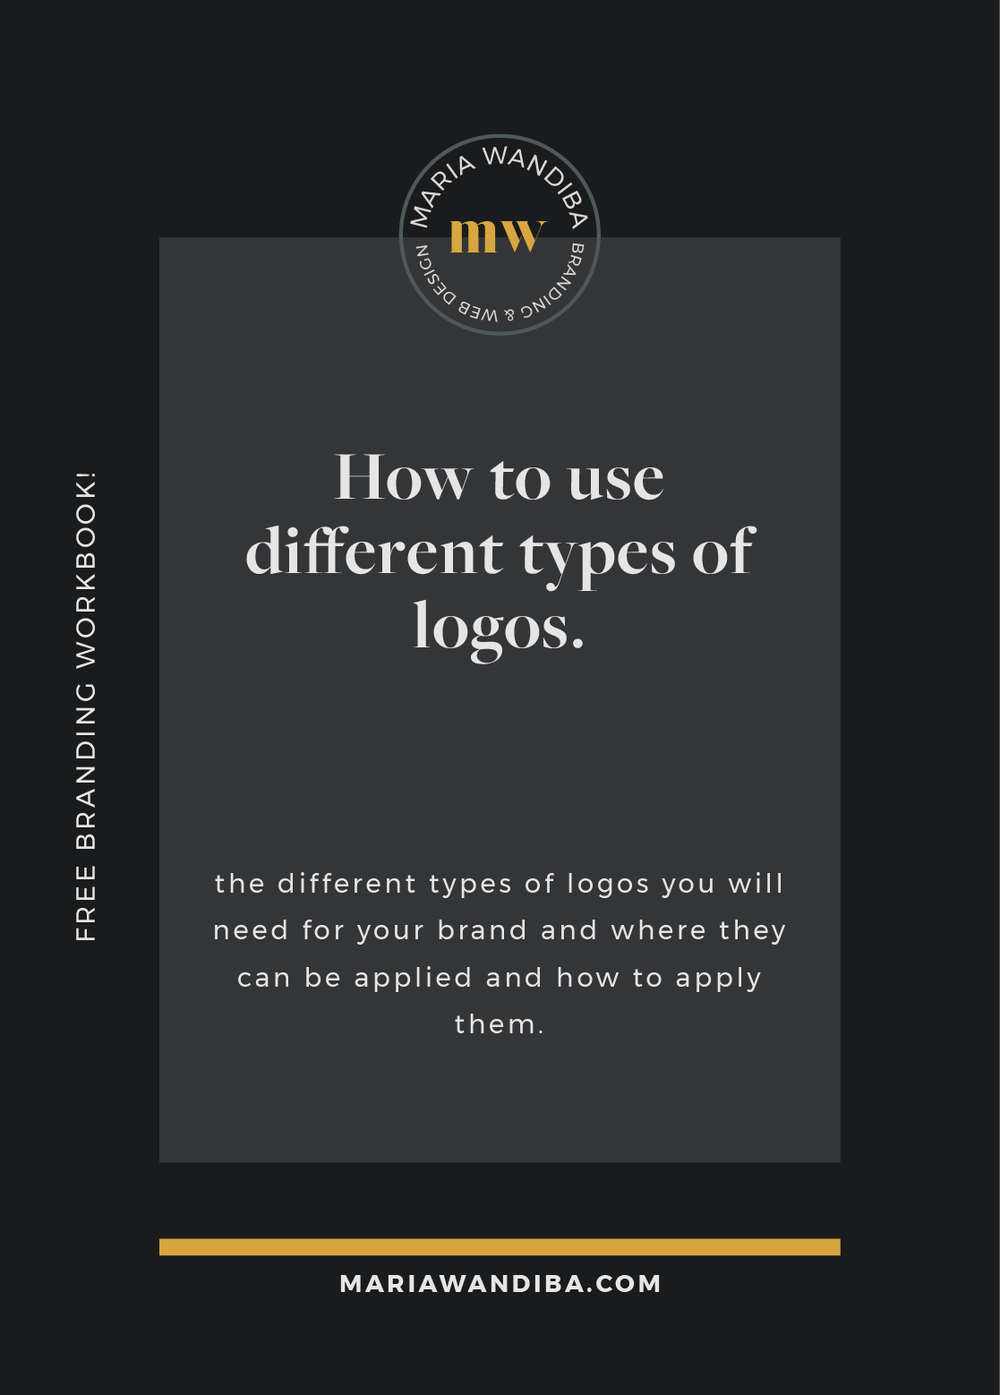 Importance-of-having-different-types-of-logos.png